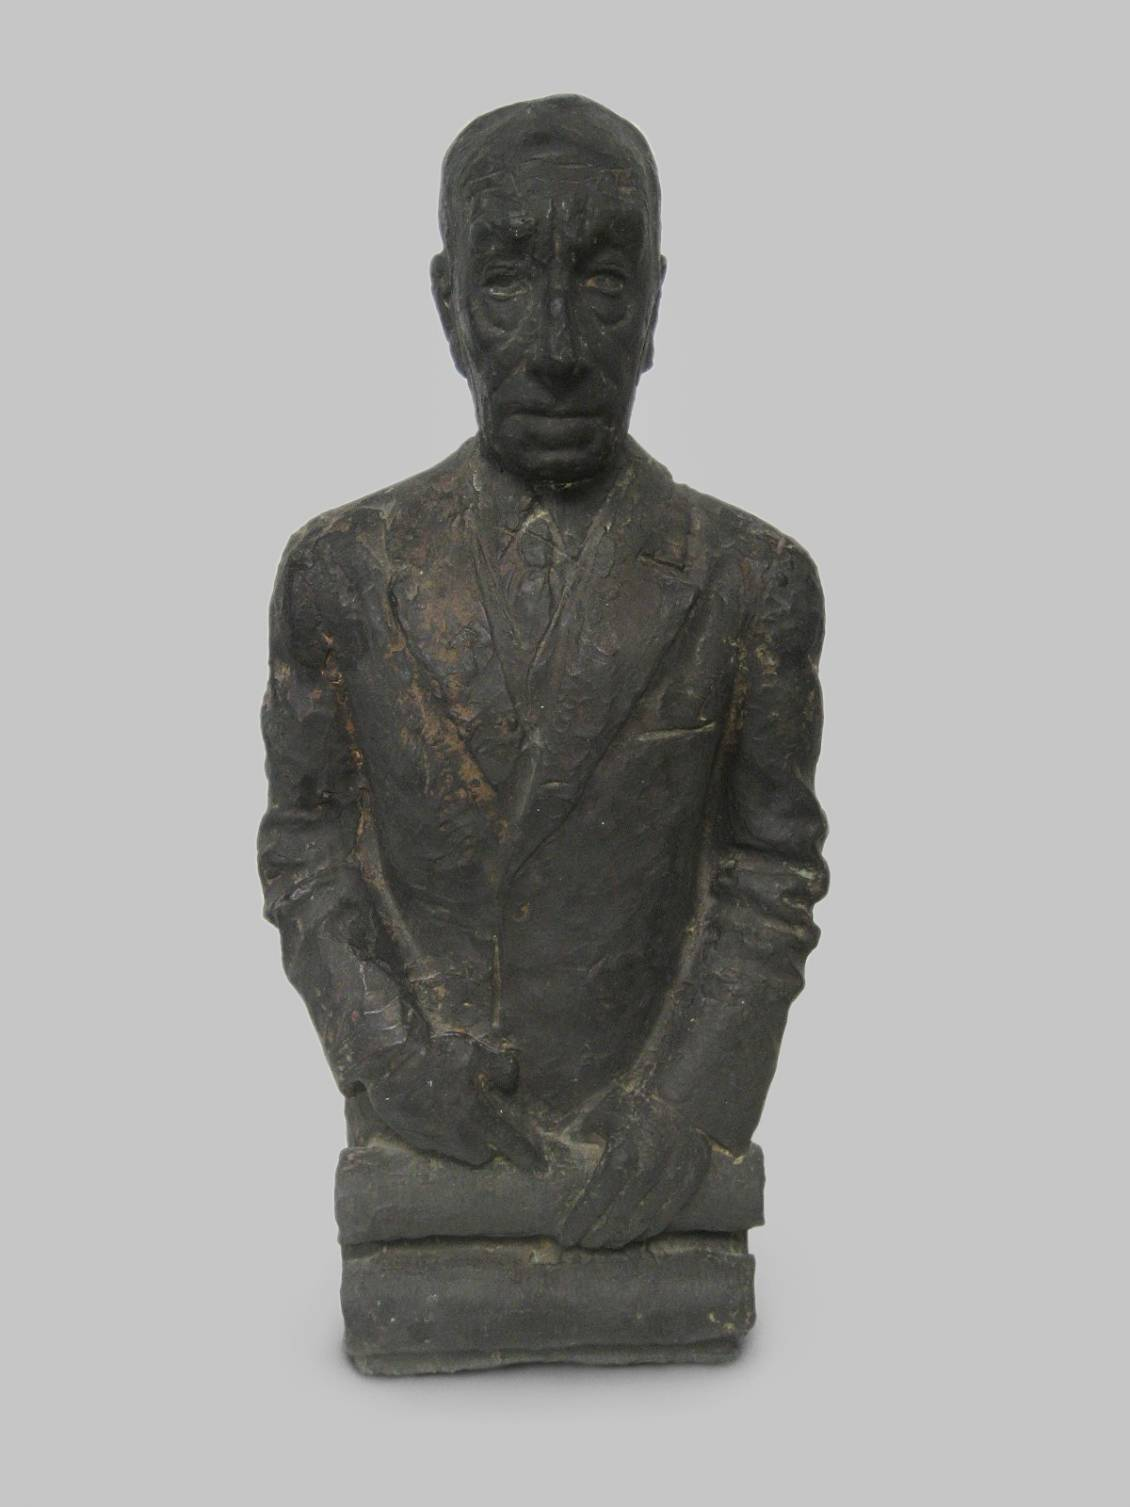 John Rädecker, Bronze bust of Henry van de Velde, donation of Mrs. Rädecker in 1957